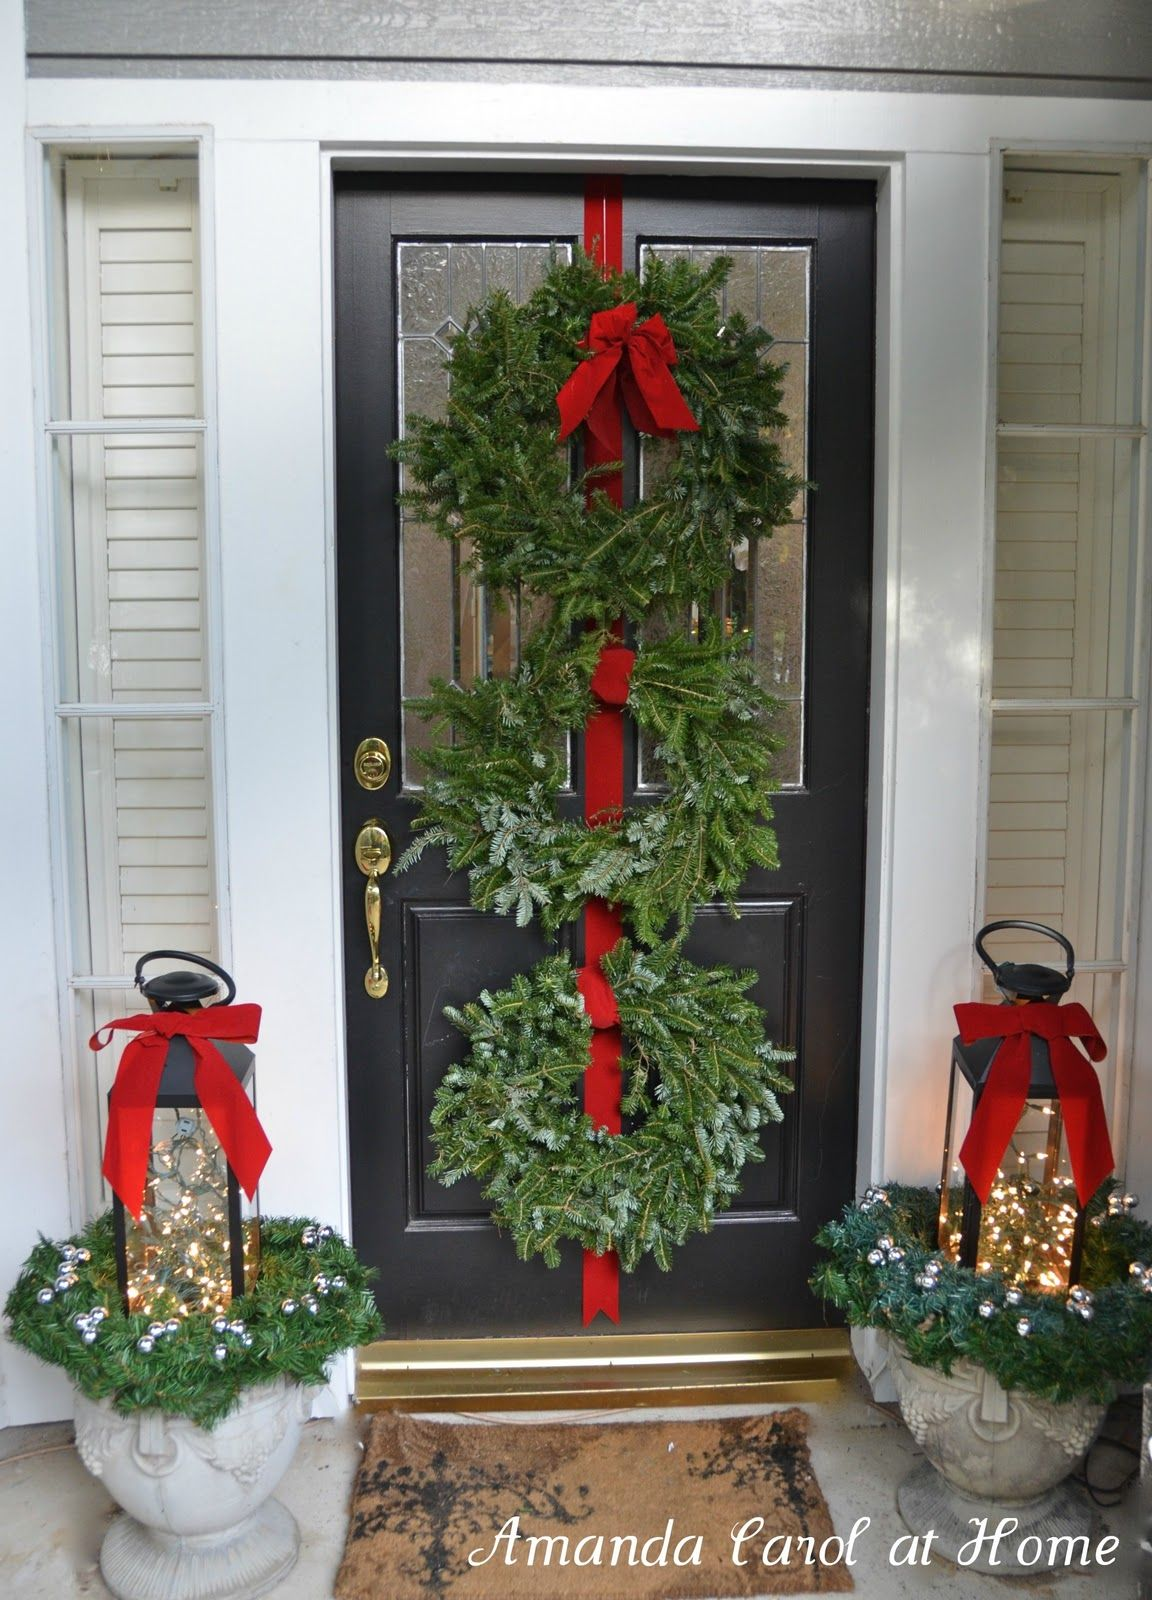 Outdoor fall decorating ideas front porch - Front Porch Christmas Decorating Ideas Source Marthastewart Com Via Amanda On Pinterest